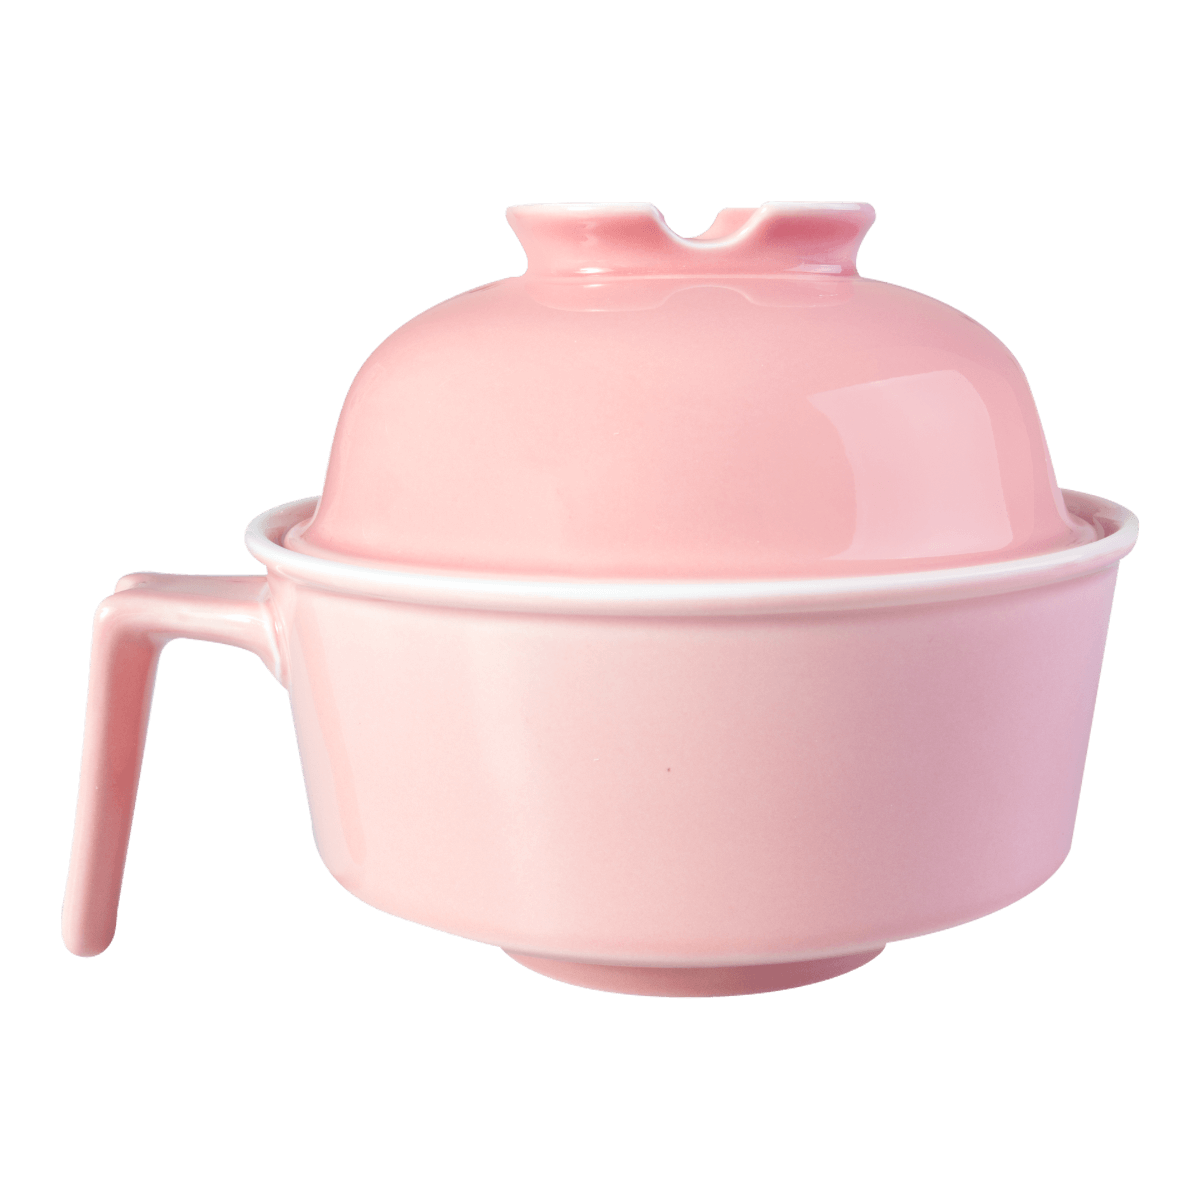 HEY BUNNY Easy Cleaning Ceramics Noodle Bowl  #Pink Microwave Safe (Free Spoon and Chopsticks Limited Timeframe)